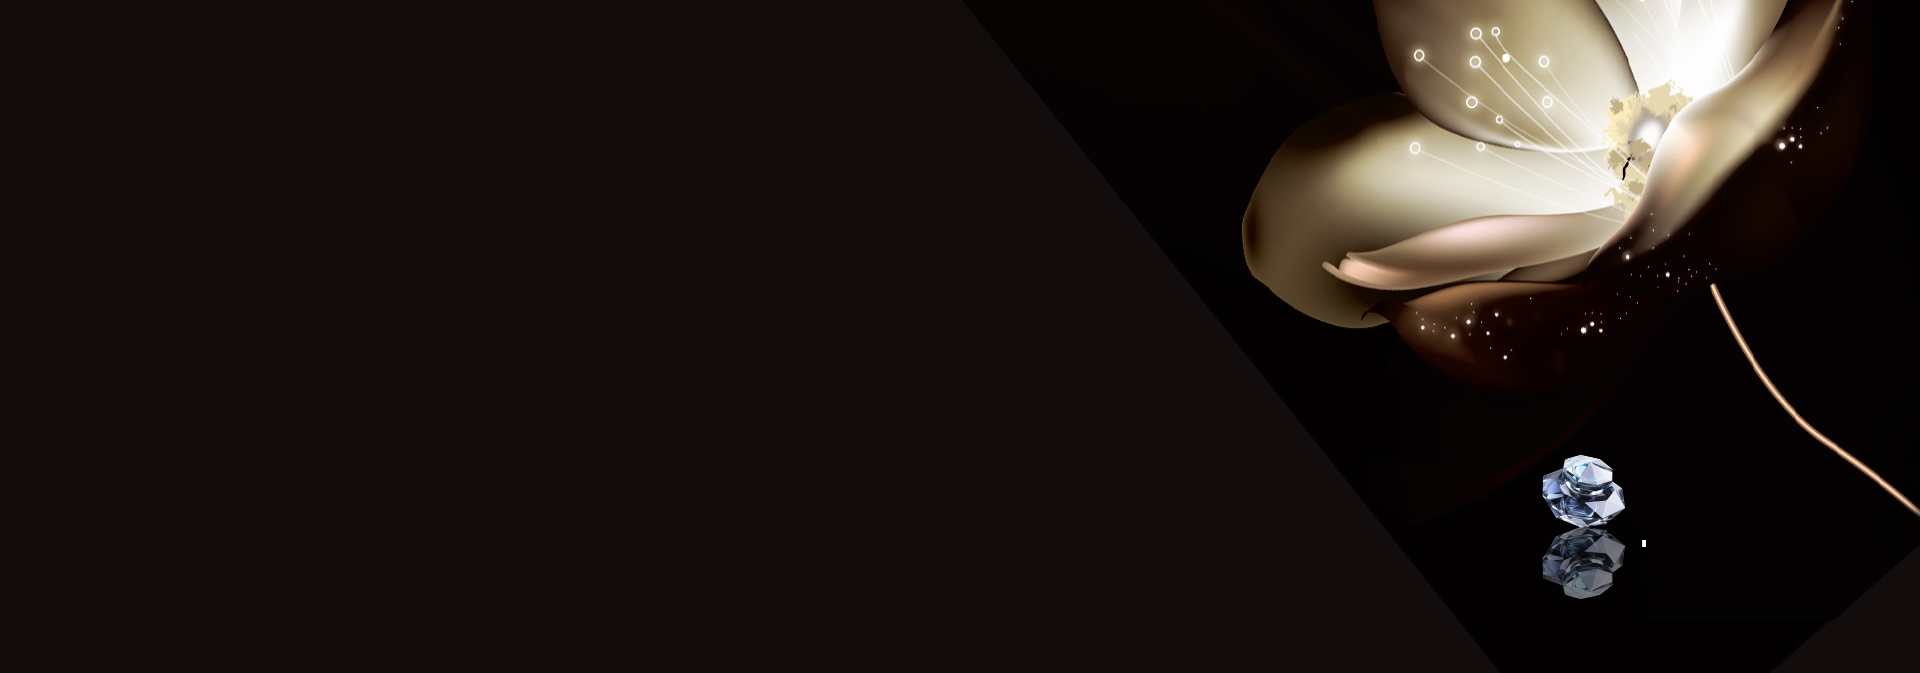 Atmospheric Luxury Jewelry Background Banner Business Card ...